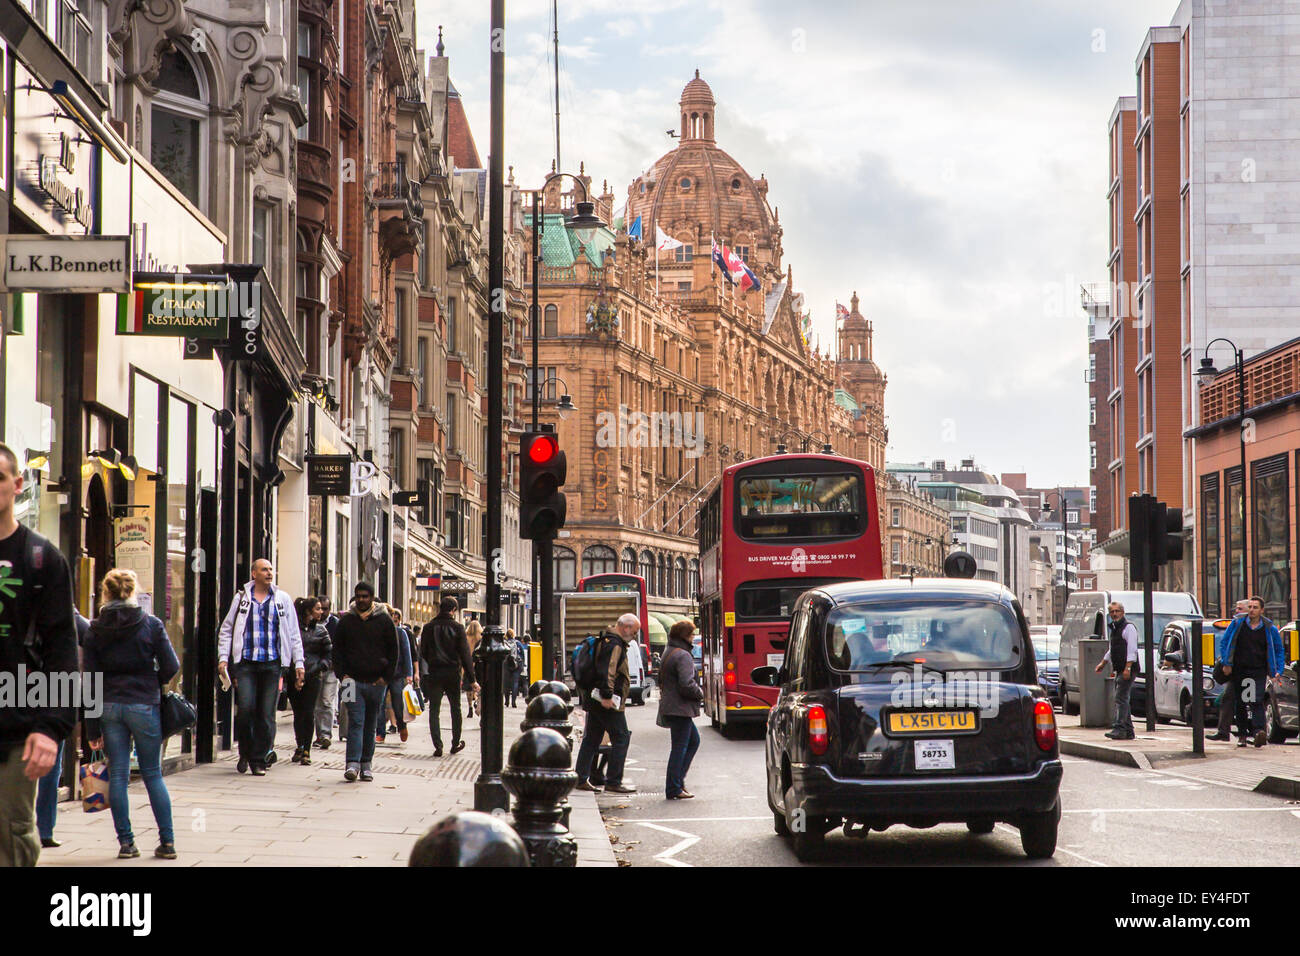 London, United Kingdom - October 8, 2014:  Street view of London along busy Brompton Road in London with Harrods - Stock Image